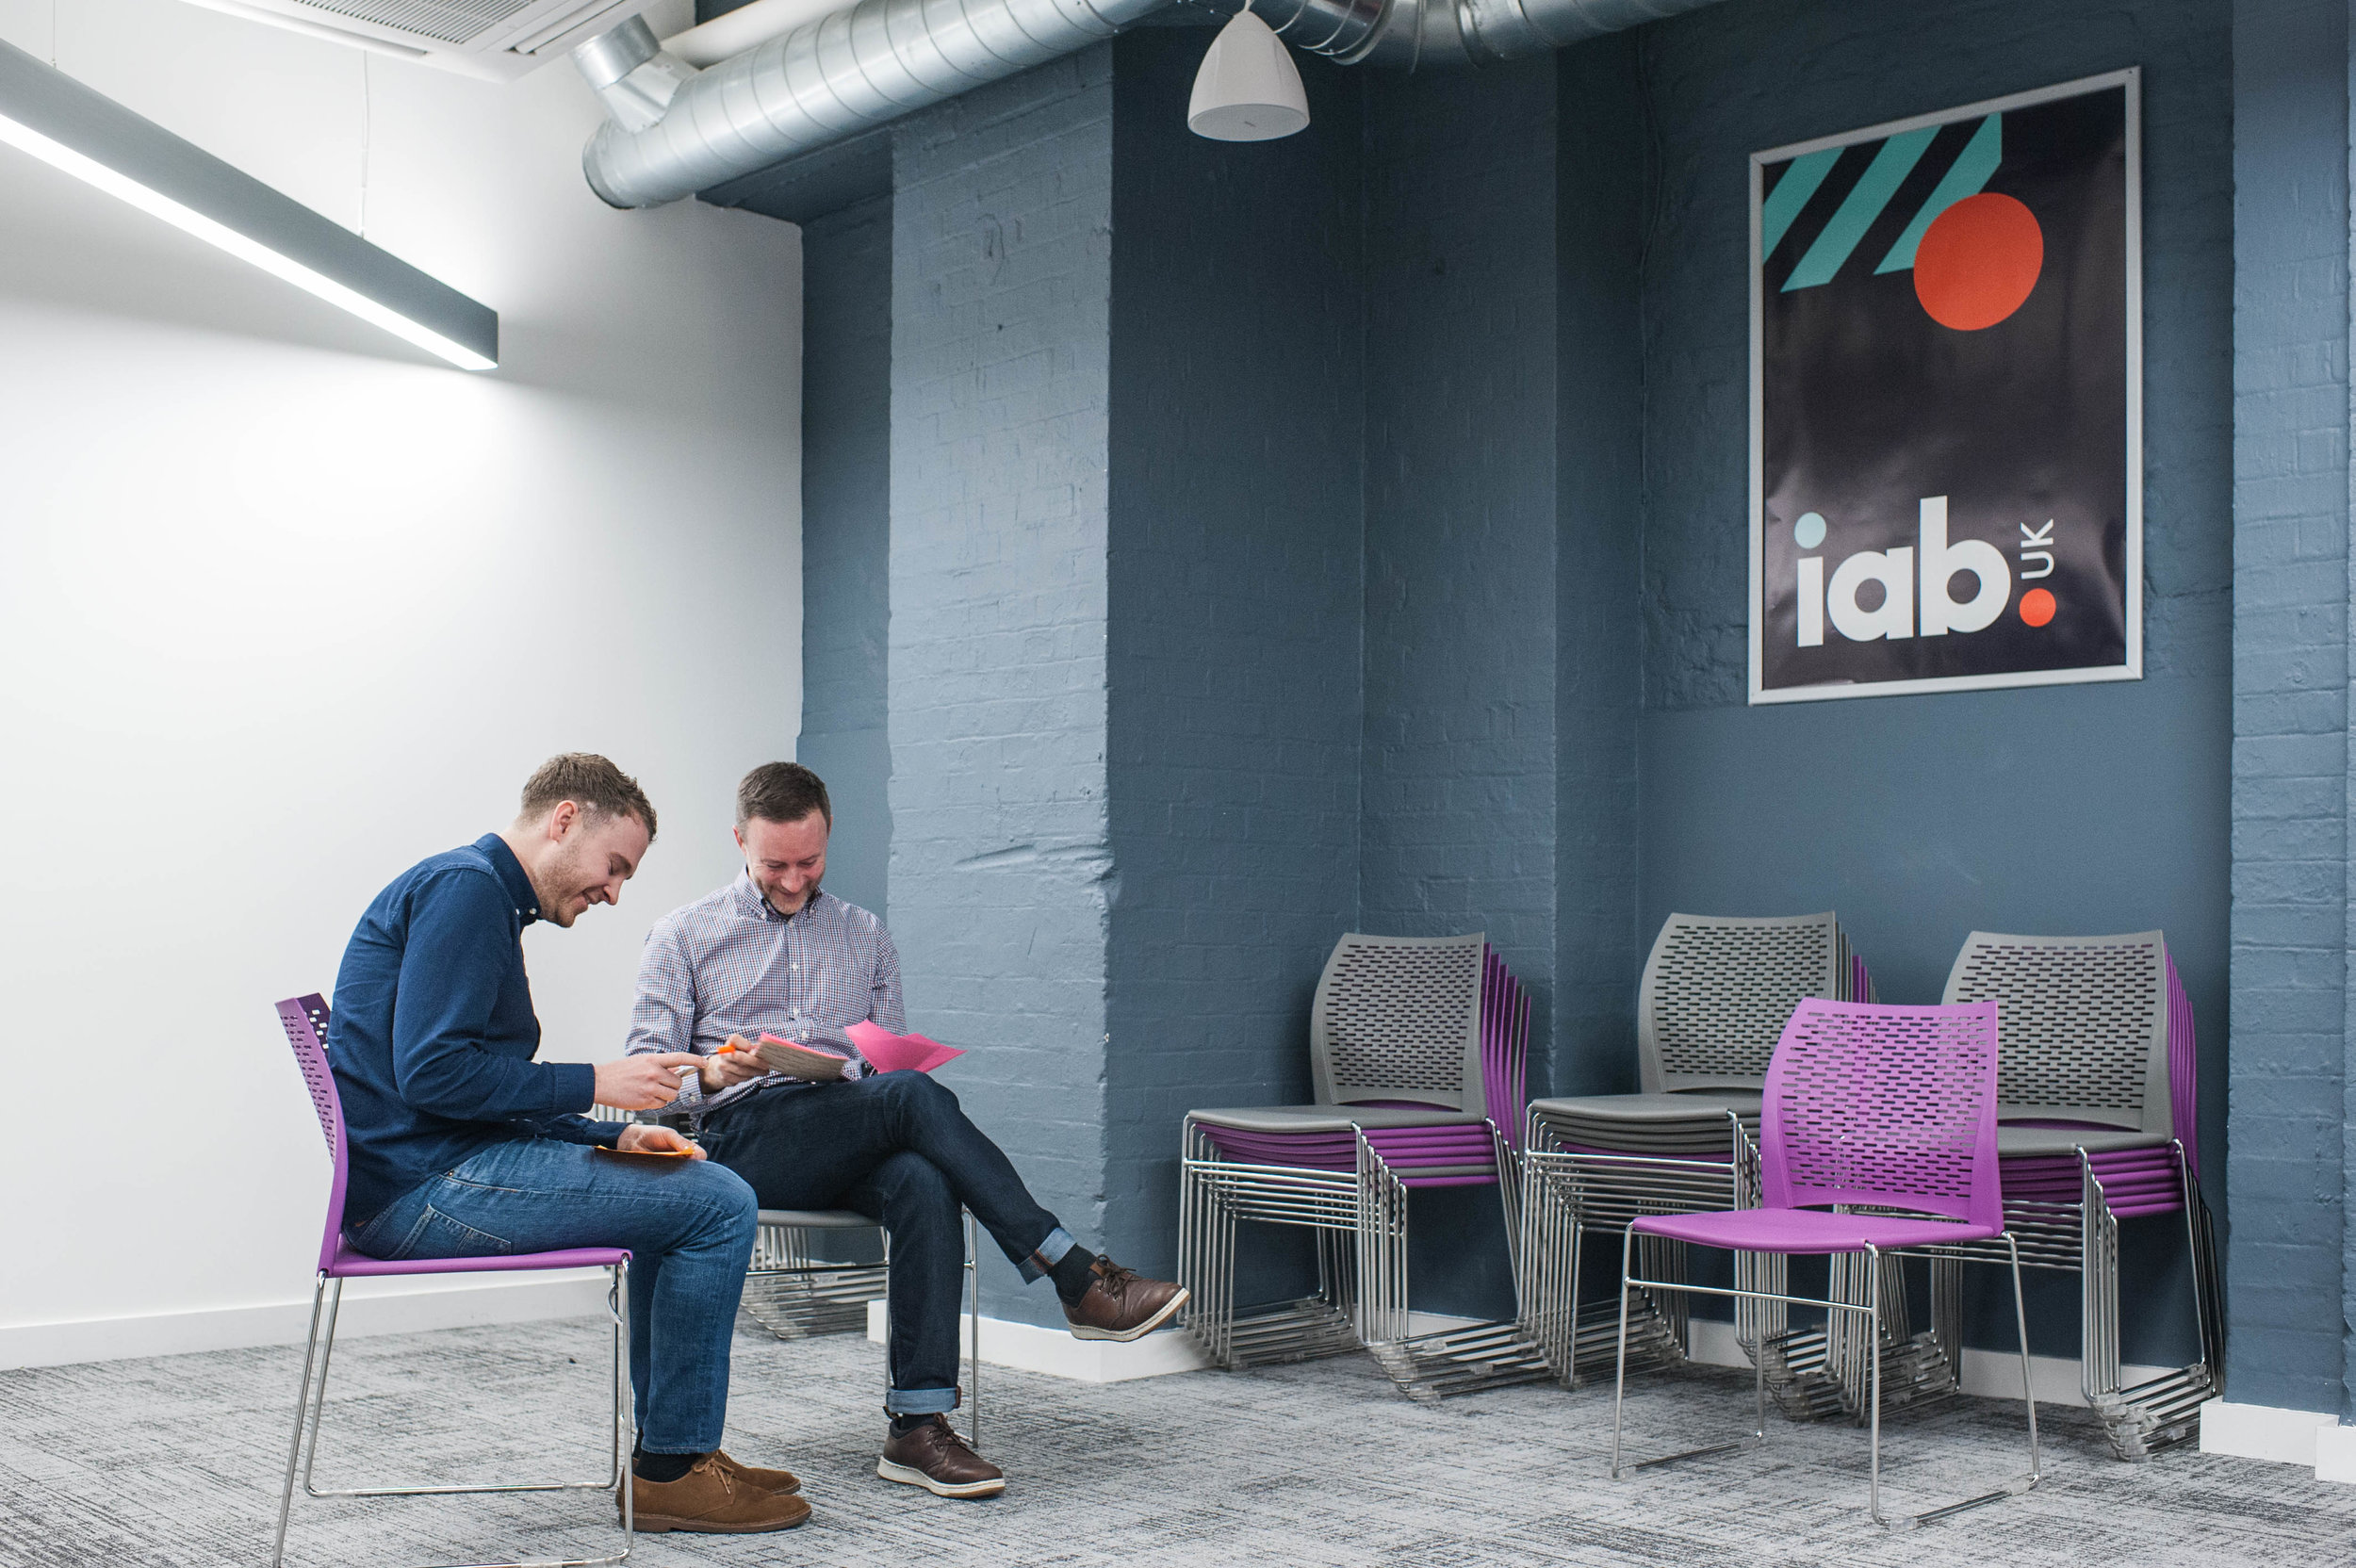 IAB Uk_Incidental Shots_SM (297 of 312).jpg